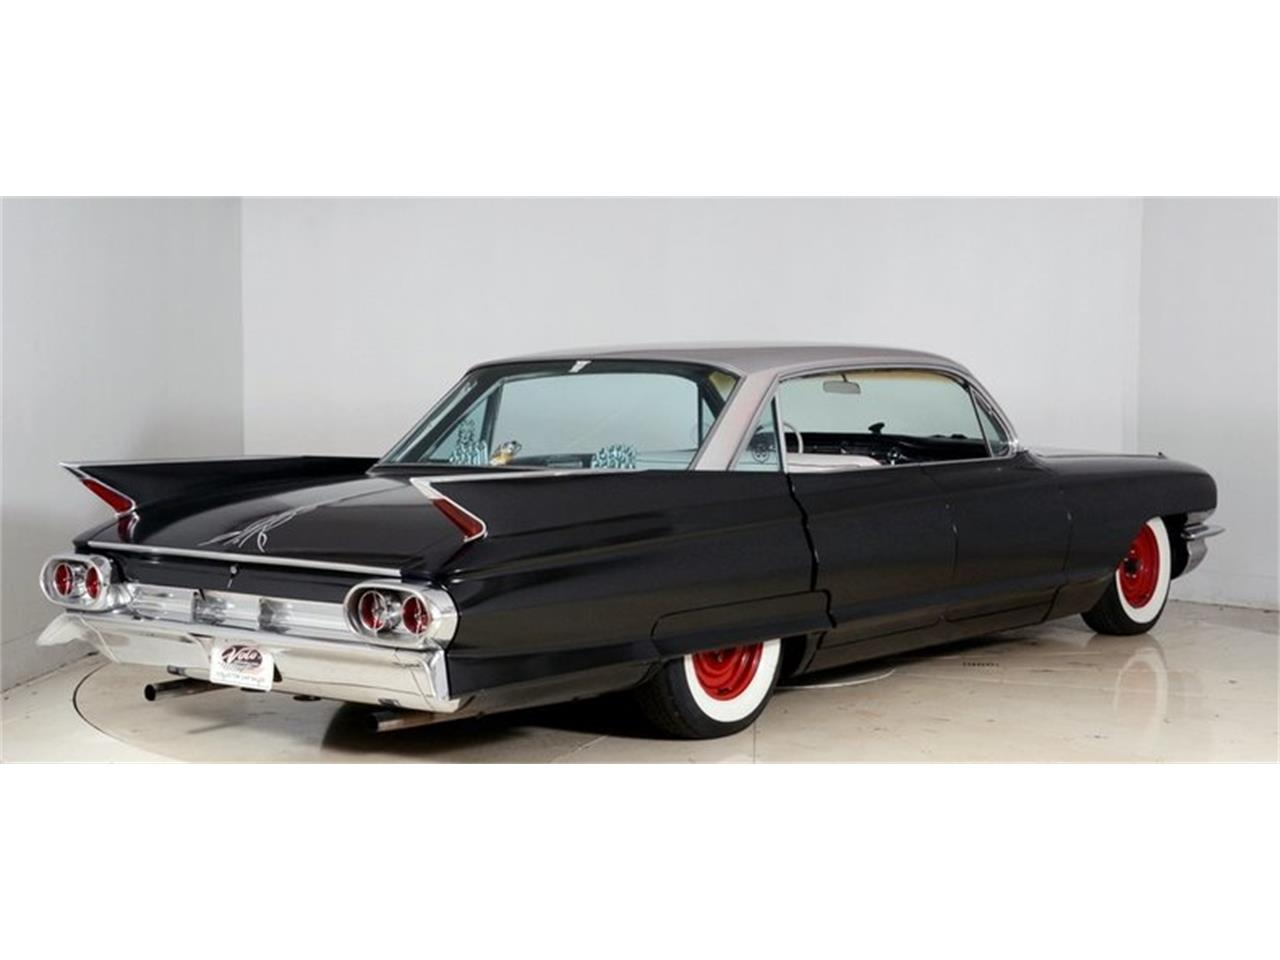 1961 Cadillac Sedan Deville For Sale Cc 904486 Large Picture Of 61 Jdwm